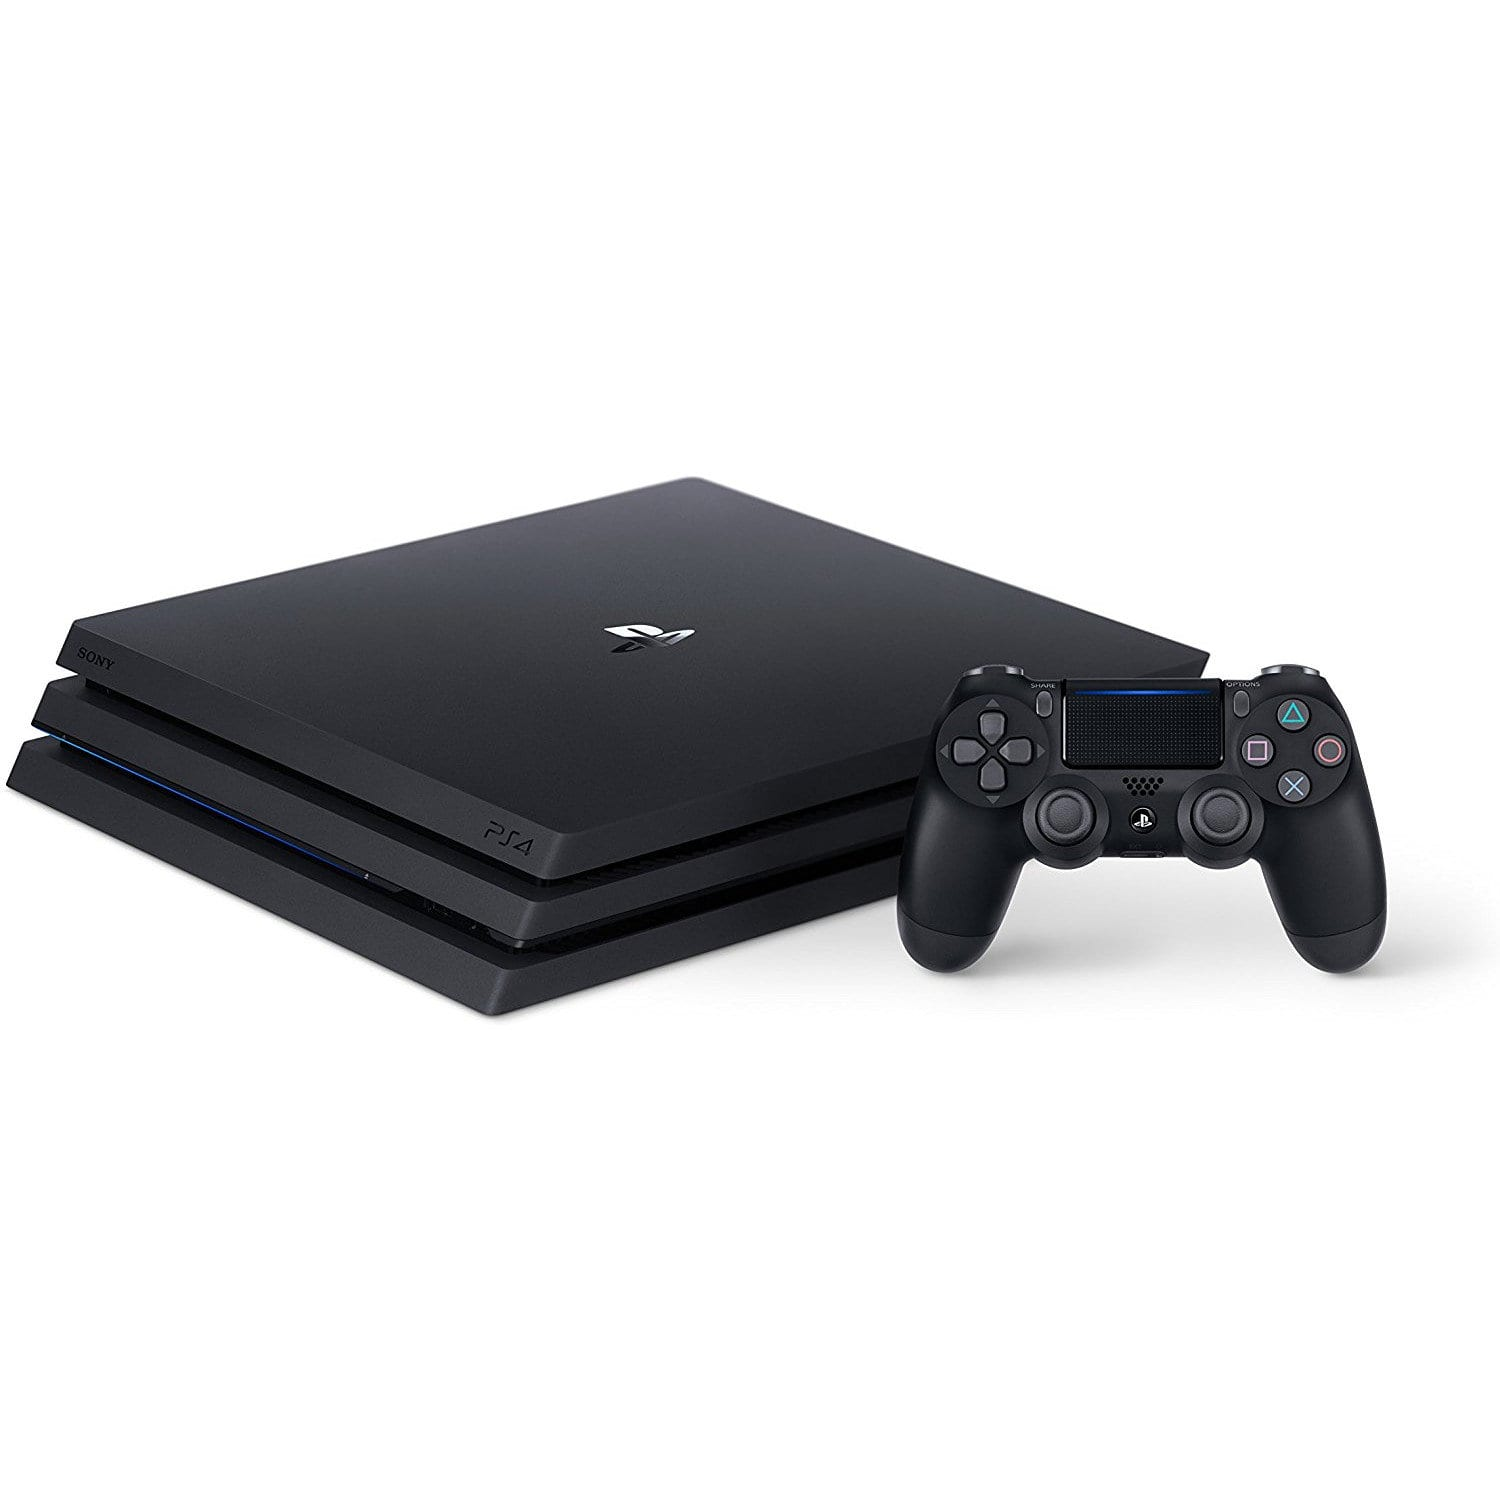 1TB Sony PlayStation 4 Pro Console (Black) + $52.35 in Rakuten SuperPoints $349.95 + Free Shipping